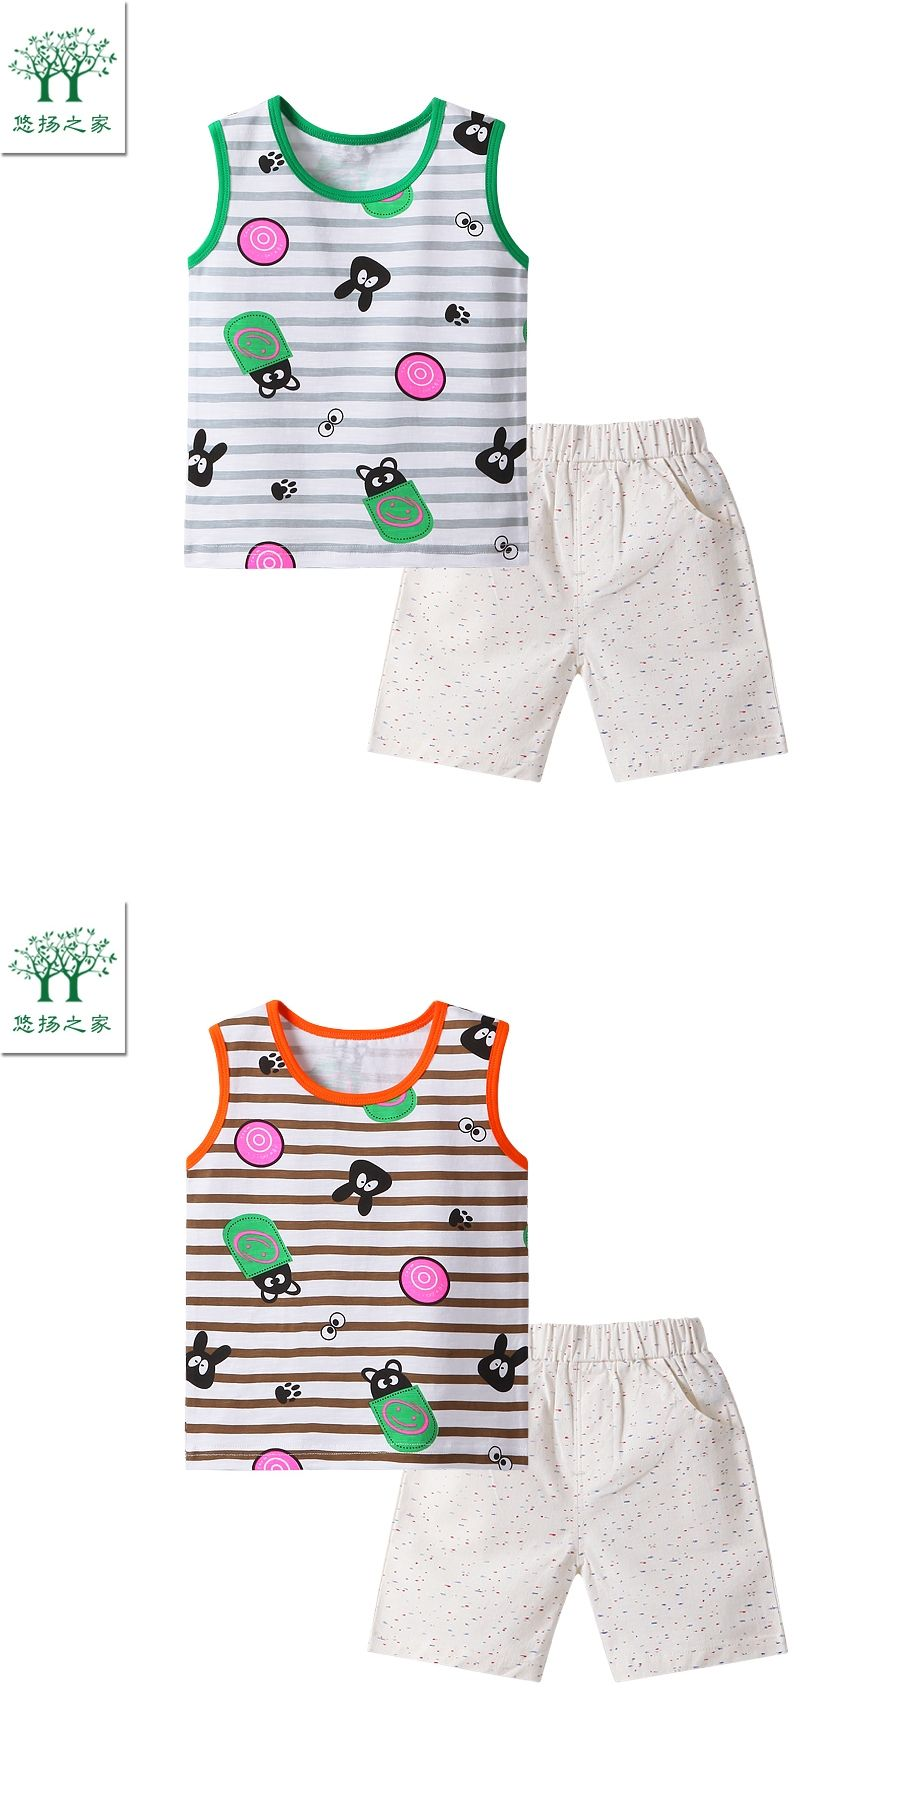 f459071b3cef 2017 new summer cotton casual baby girl boy sets vest and short ...